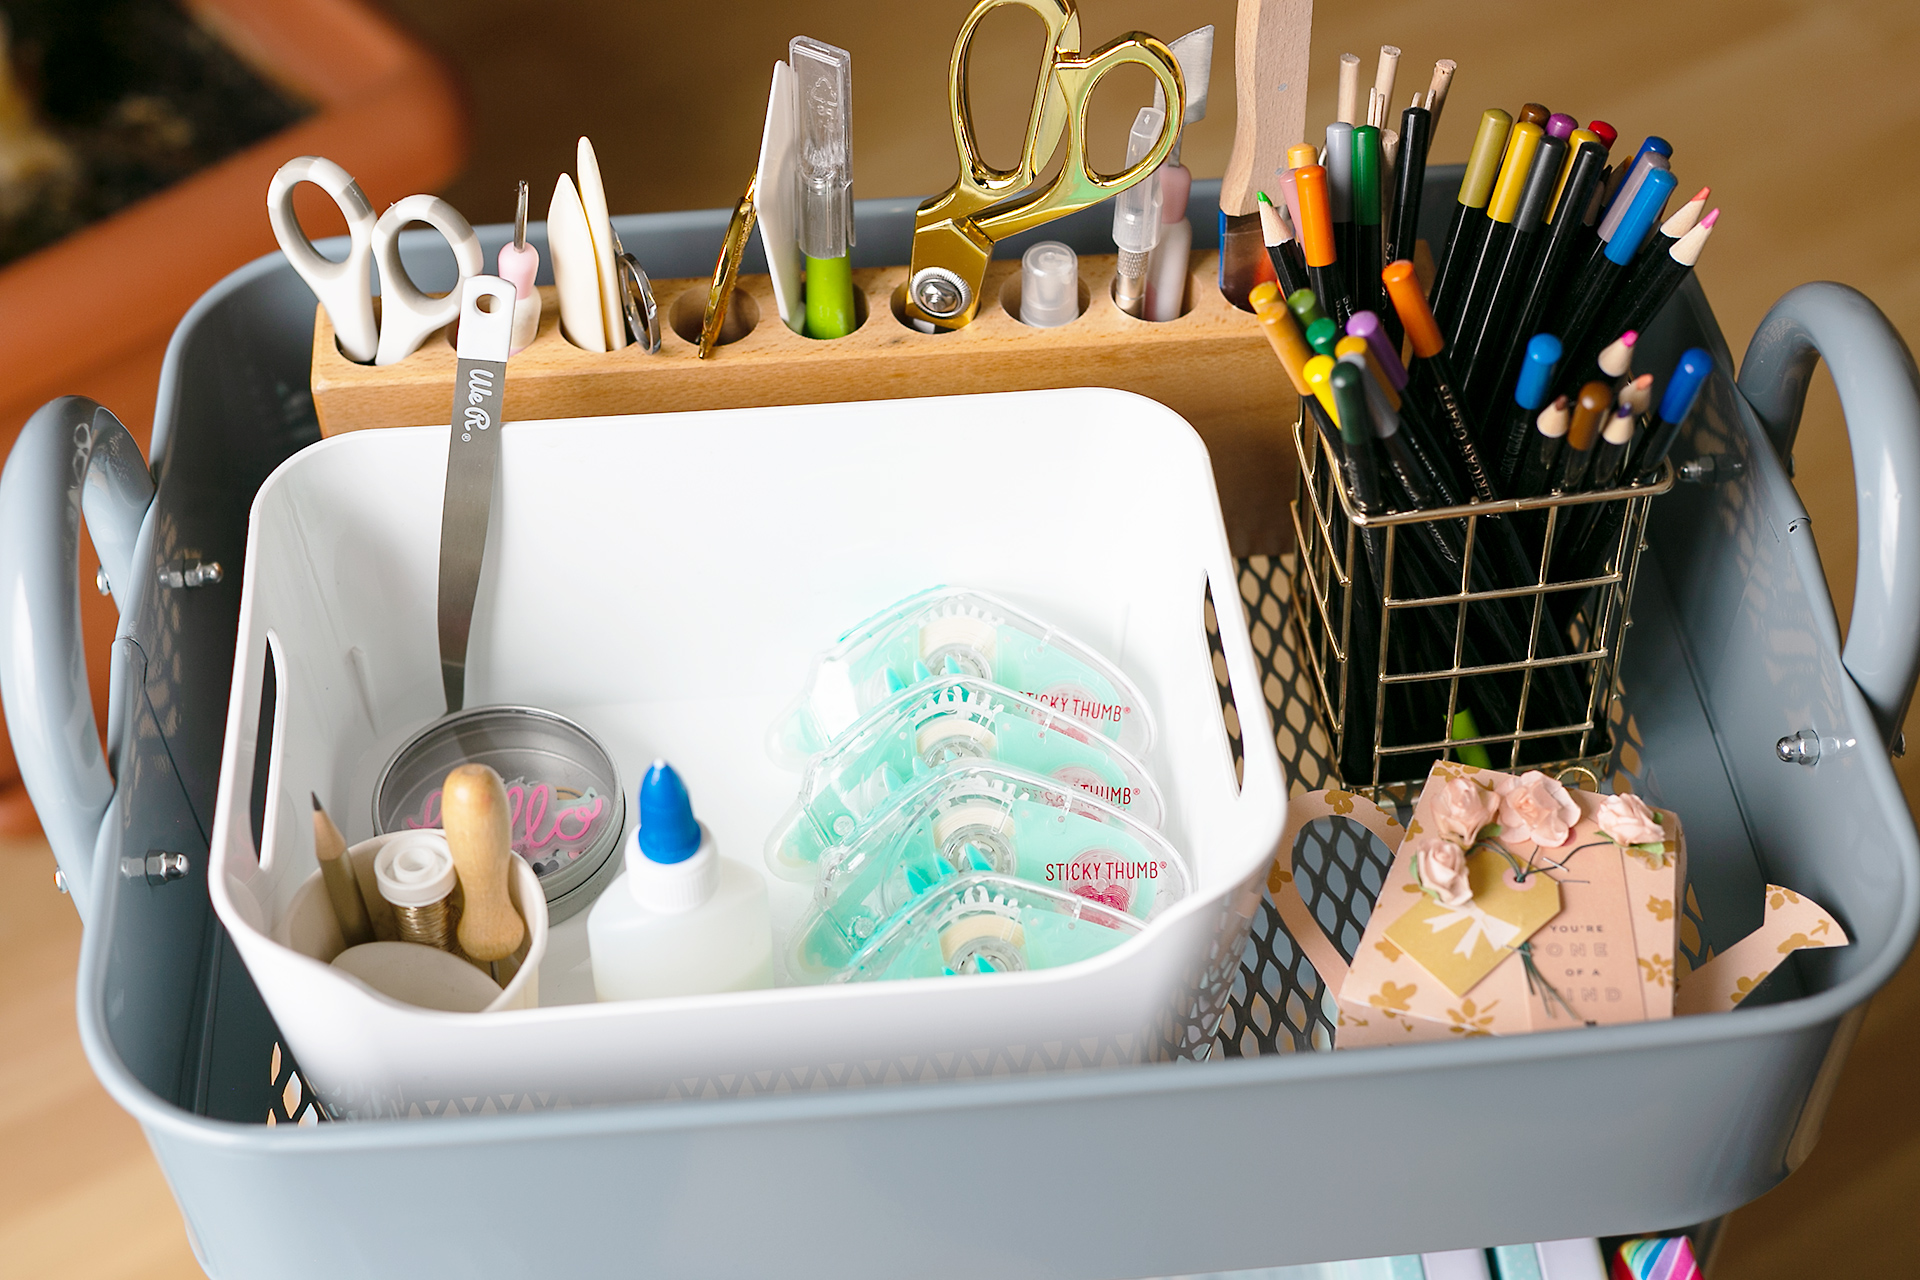 Top shelve of the steel blue storage card by WRMK. A white container holds glue, tape runners, and other small items. On the right side, there is a golden pencil holder. A wooden storage for pencils hold scissors, bone folders, and other helpers.